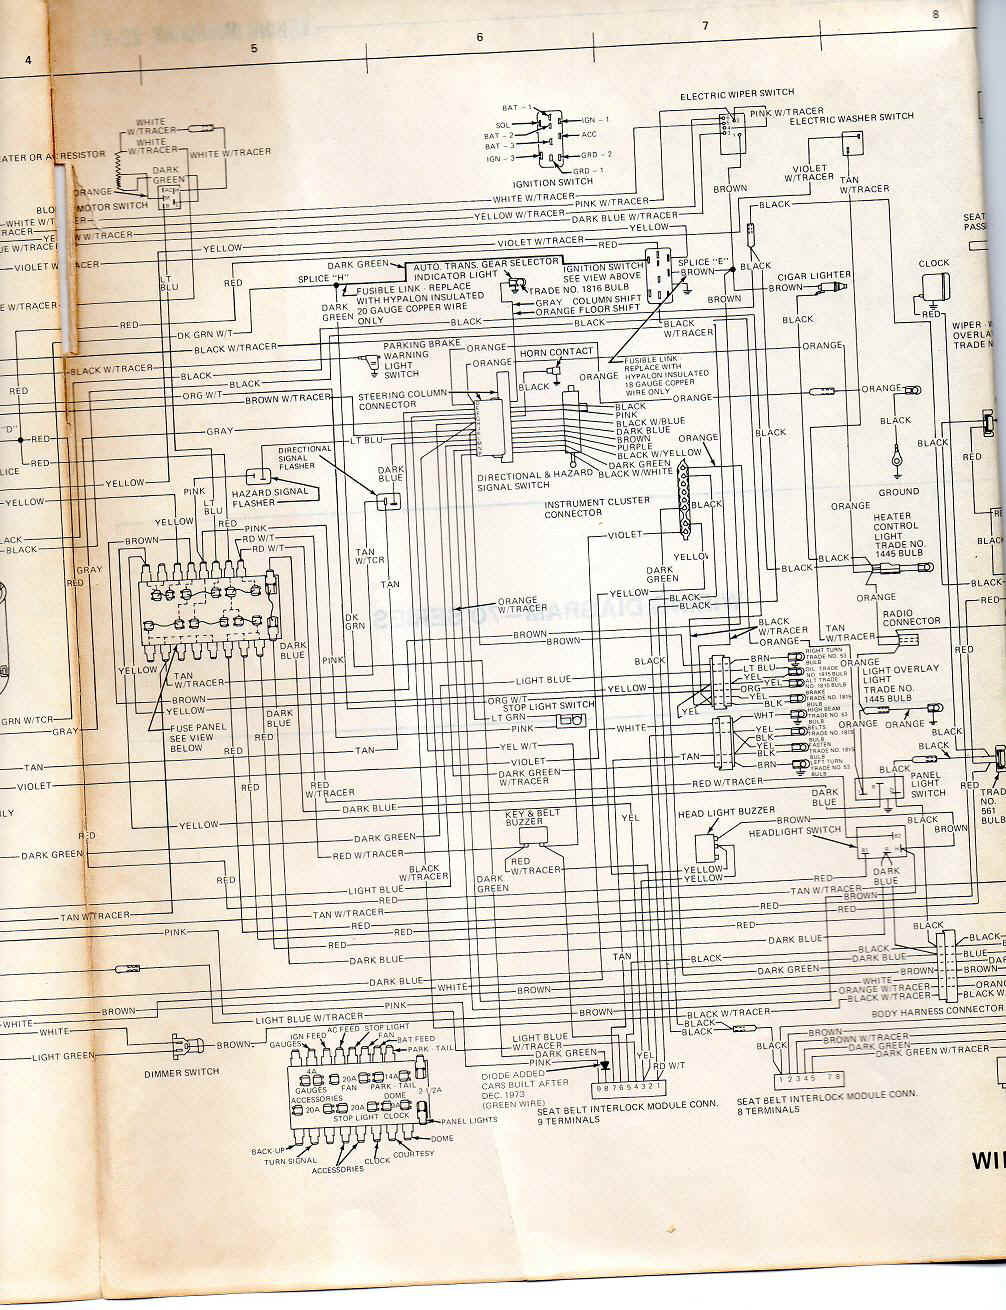 74 javelin wiring harness 2 troubleshooting 1971 AMC Javelin at crackthecode.co